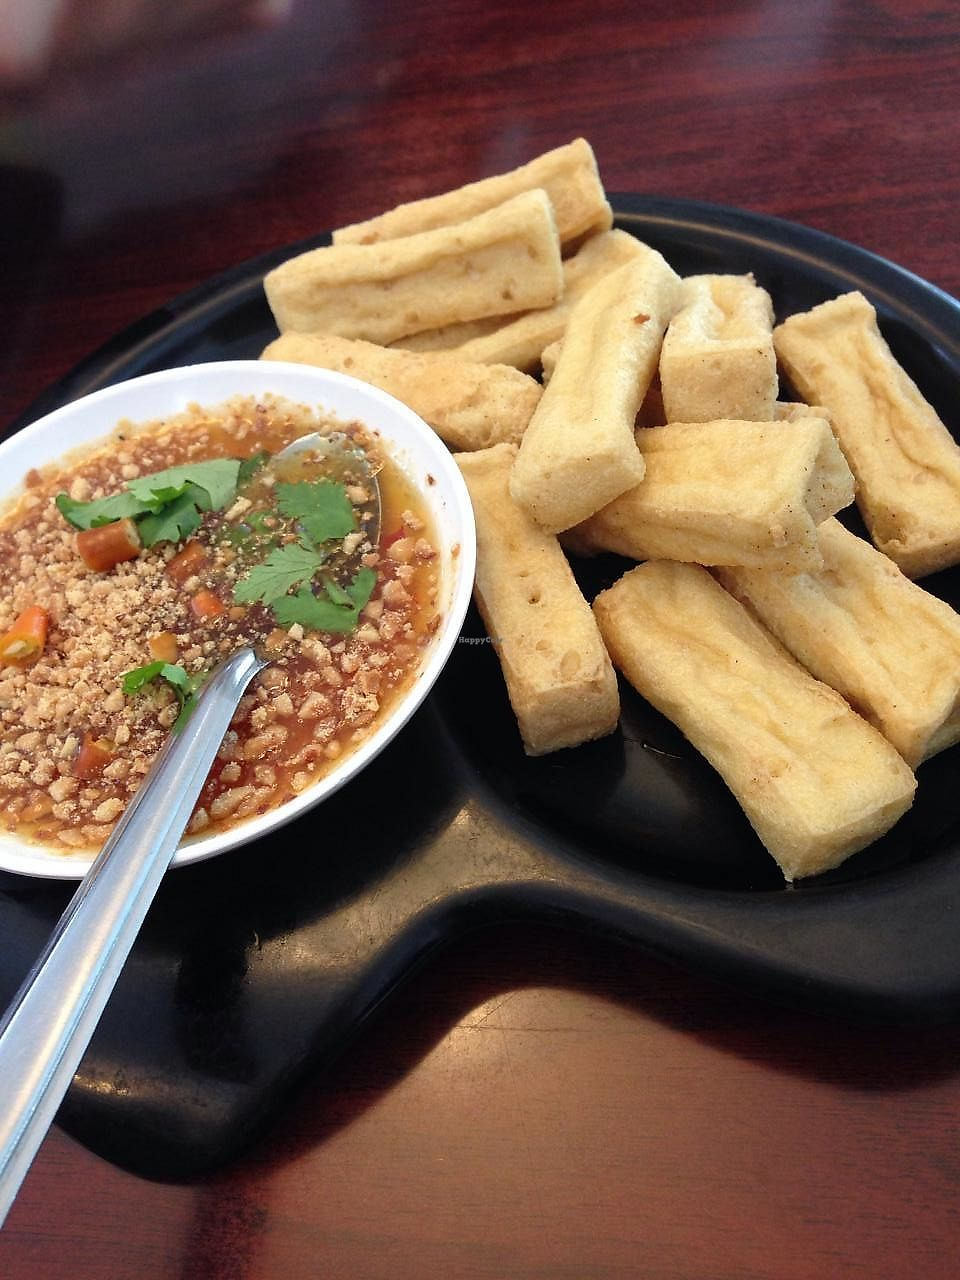 """Photo of Talalask  by <a href=""""/members/profile/Wansaree"""">Wansaree</a> <br/>Fried Organic tofu <br/> January 24, 2014  - <a href='/contact/abuse/image/9875/268596'>Report</a>"""